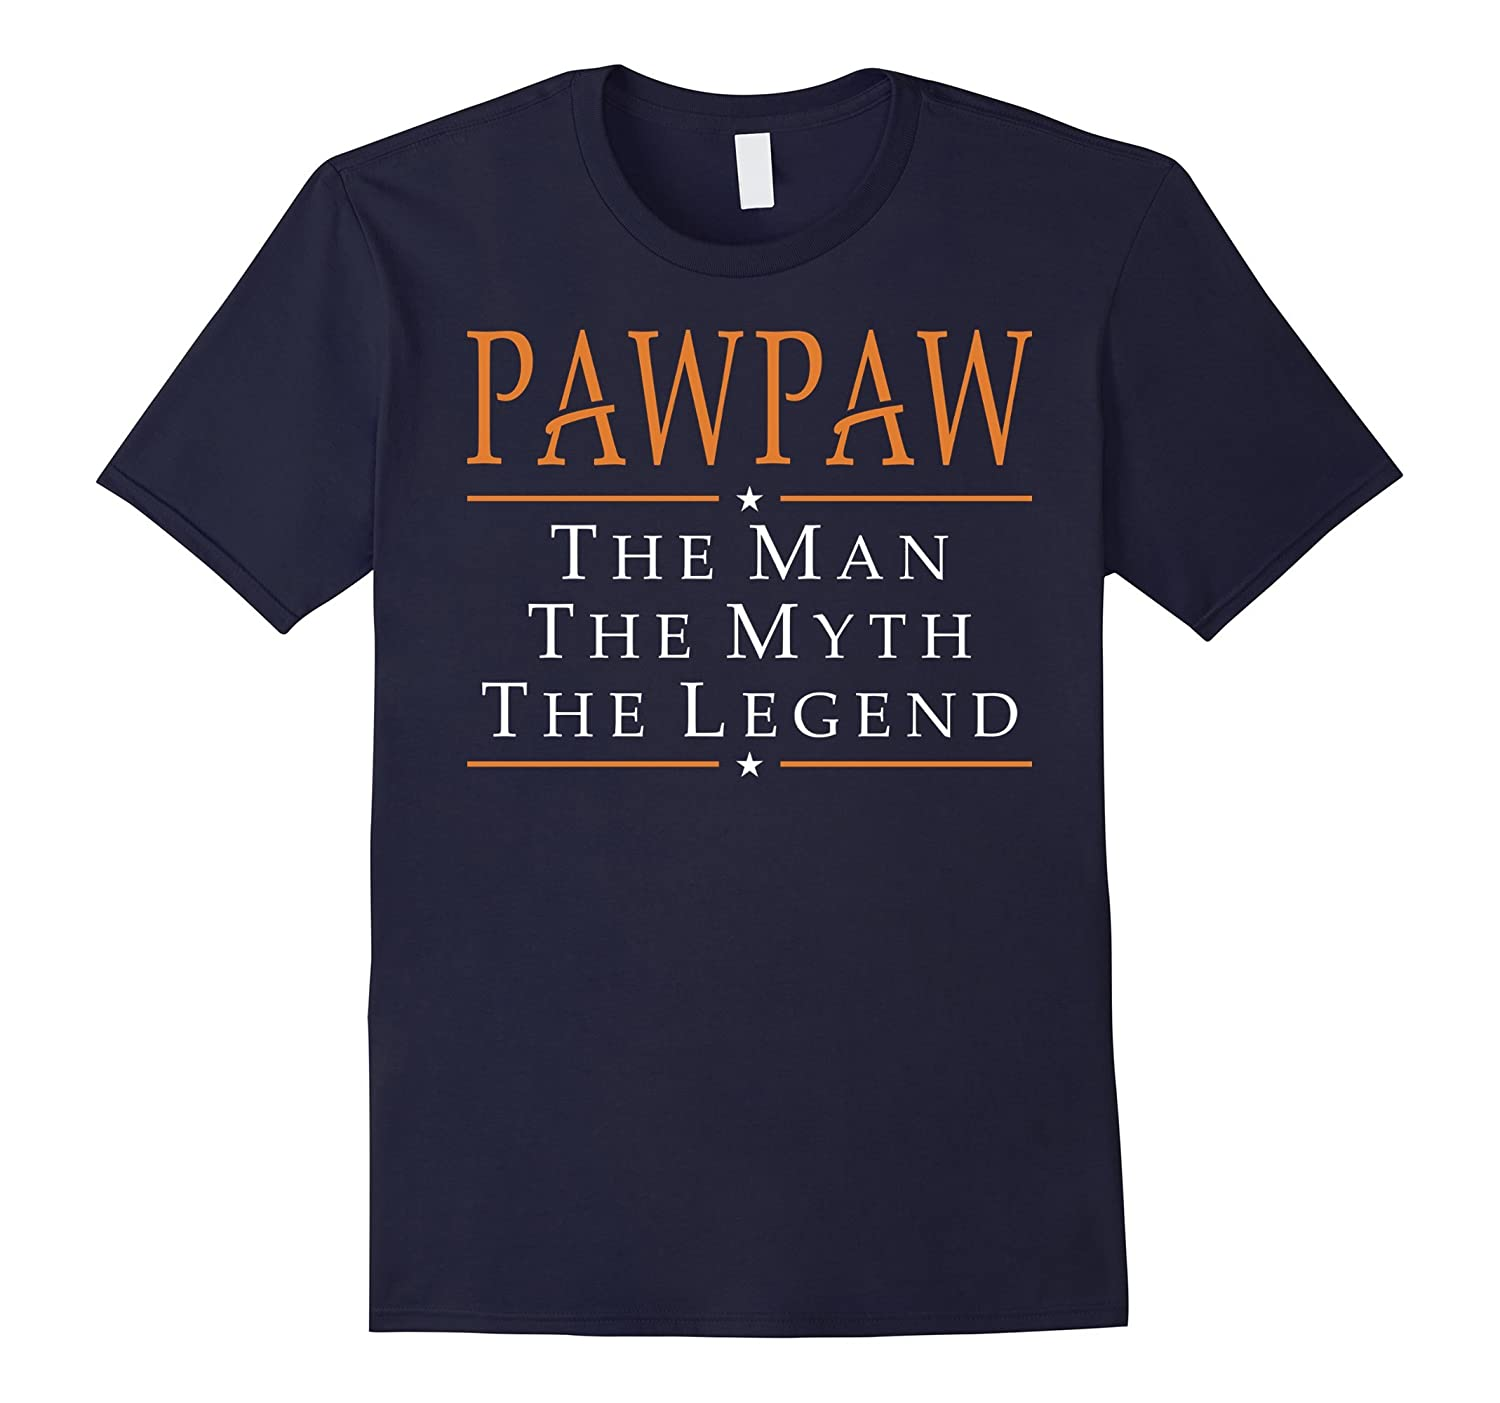 Pawpaw The Man The Myth The Legend T-Shirt Tshirt-TD